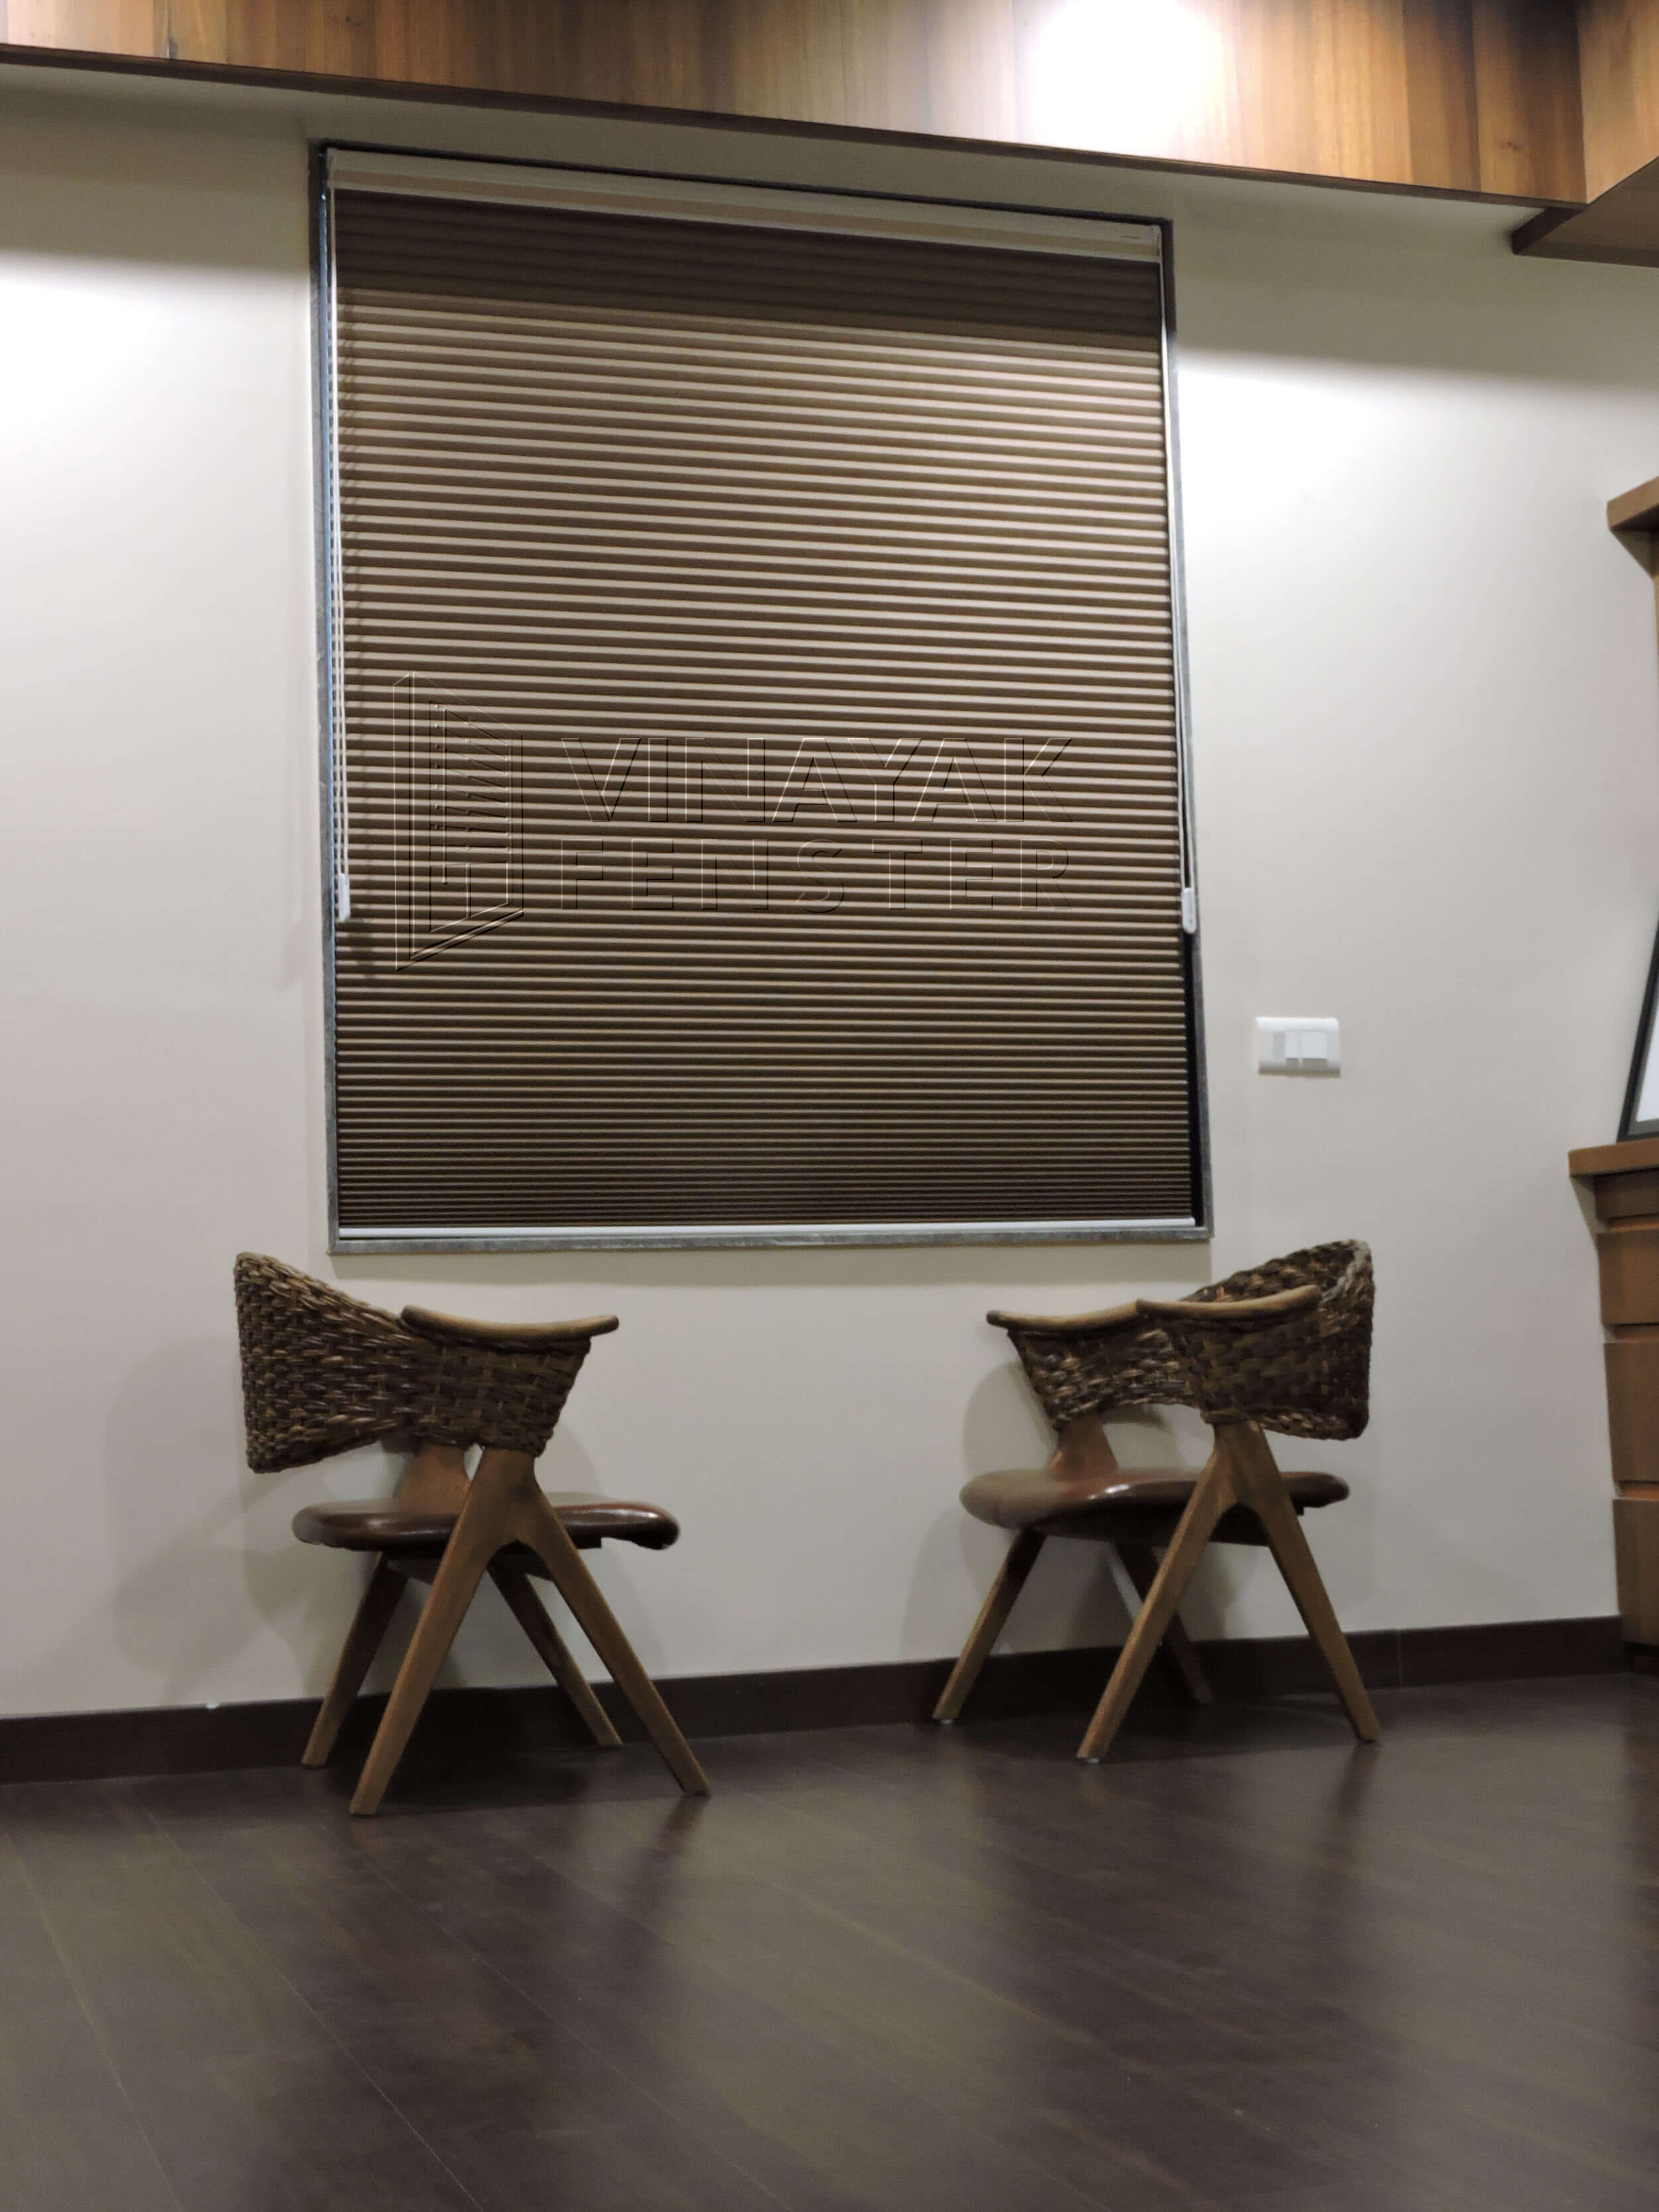 a bamboo hunter savalan shades valance wood provenance pirouette blinds with decor window and dougls woven